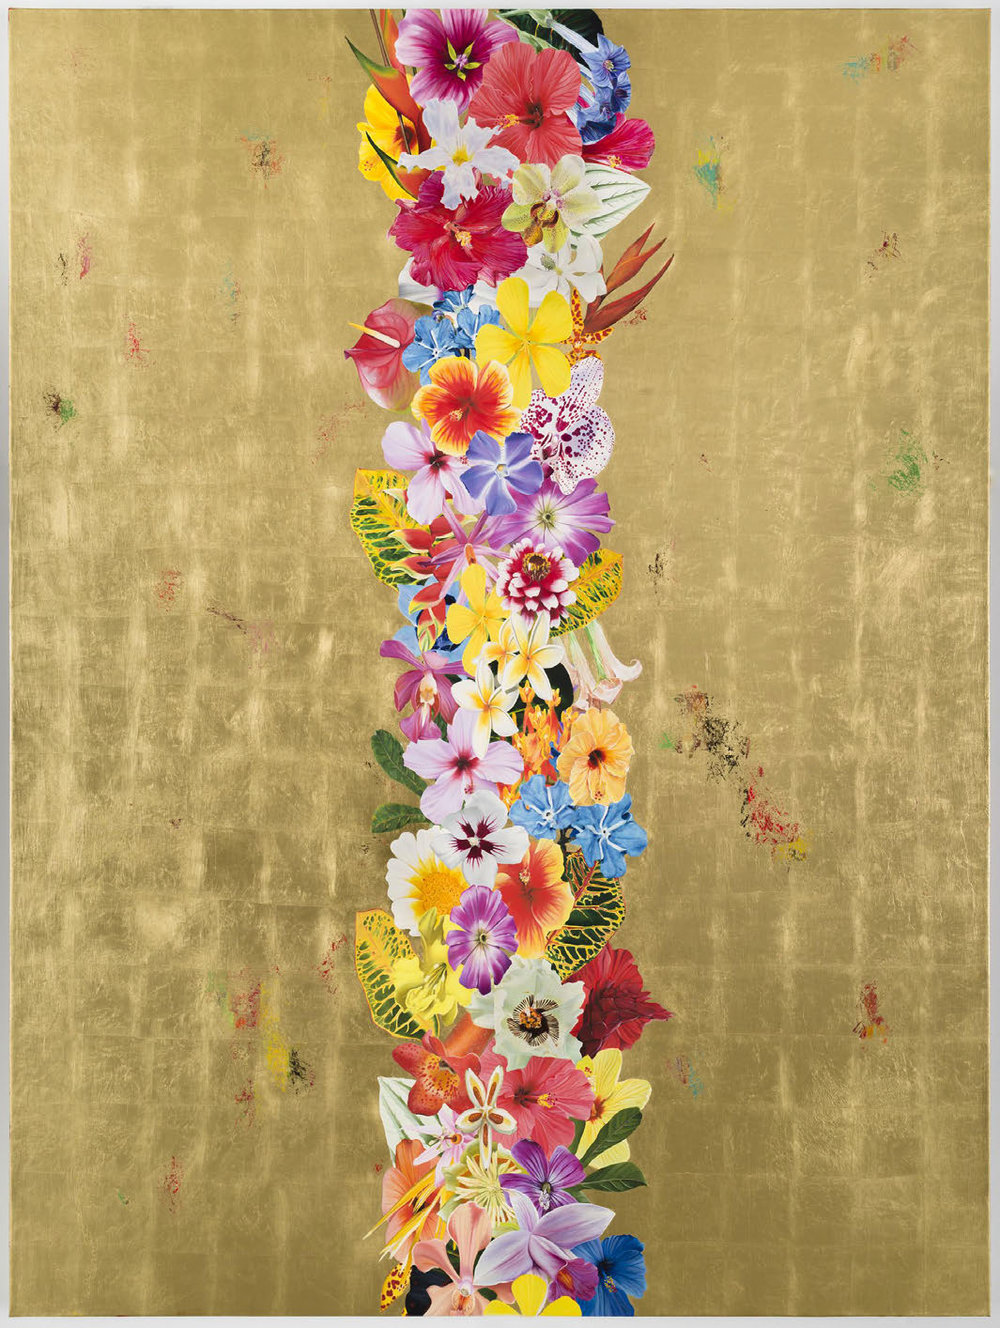 Gild the Lily (Decadence Upon Decadence I),  2016 Oil, satin varnish, and imitation gold leaf on canvas 96 x 82 inches